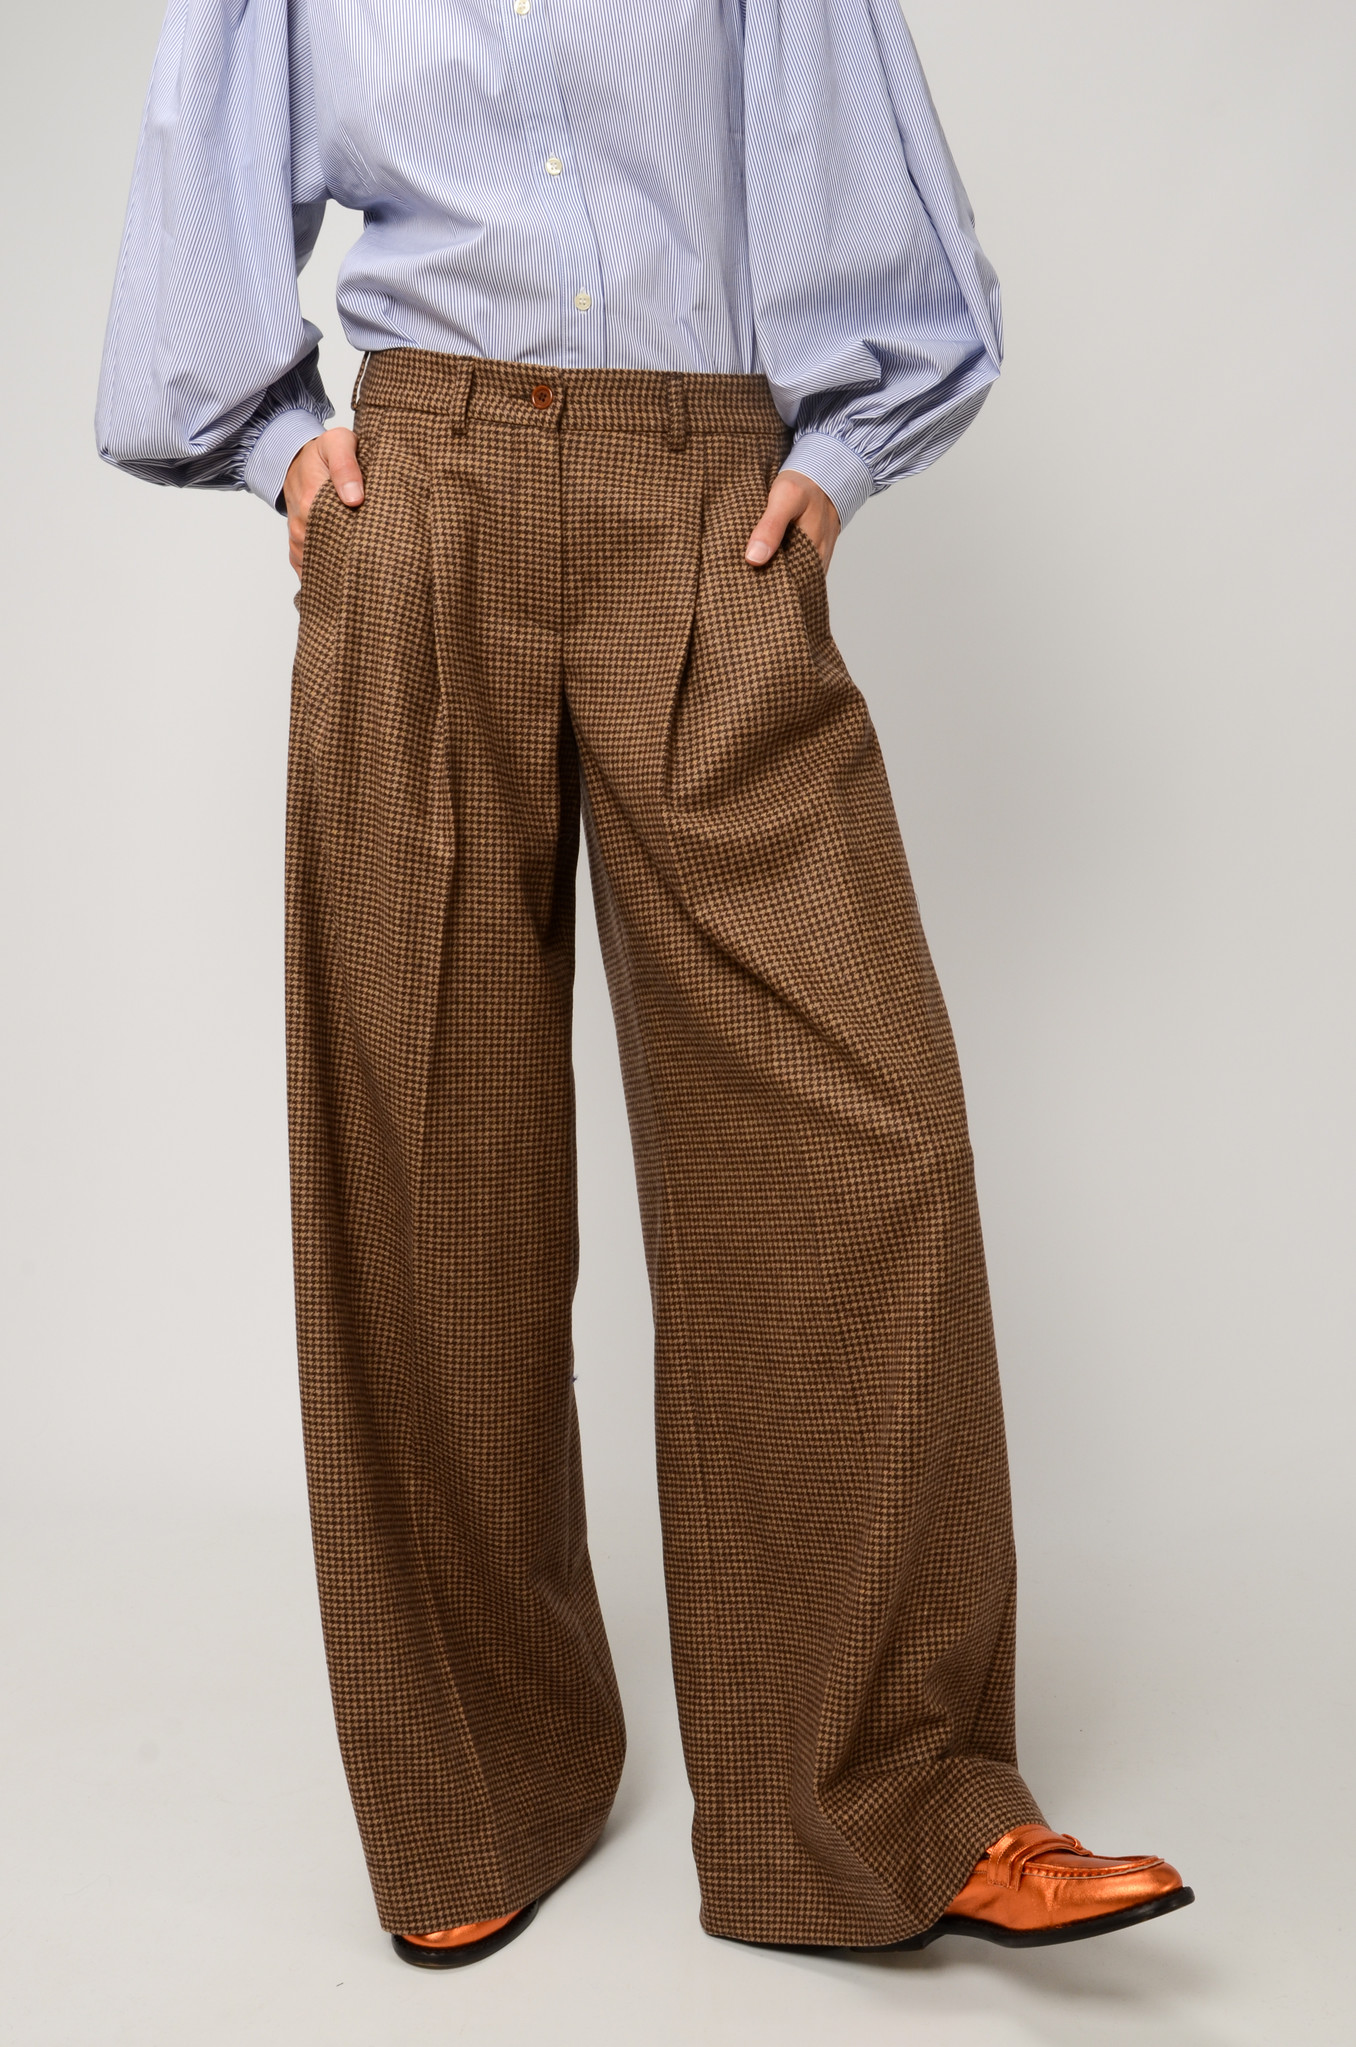 KATHERINE PANTS IN CHECKERED WOOL-5